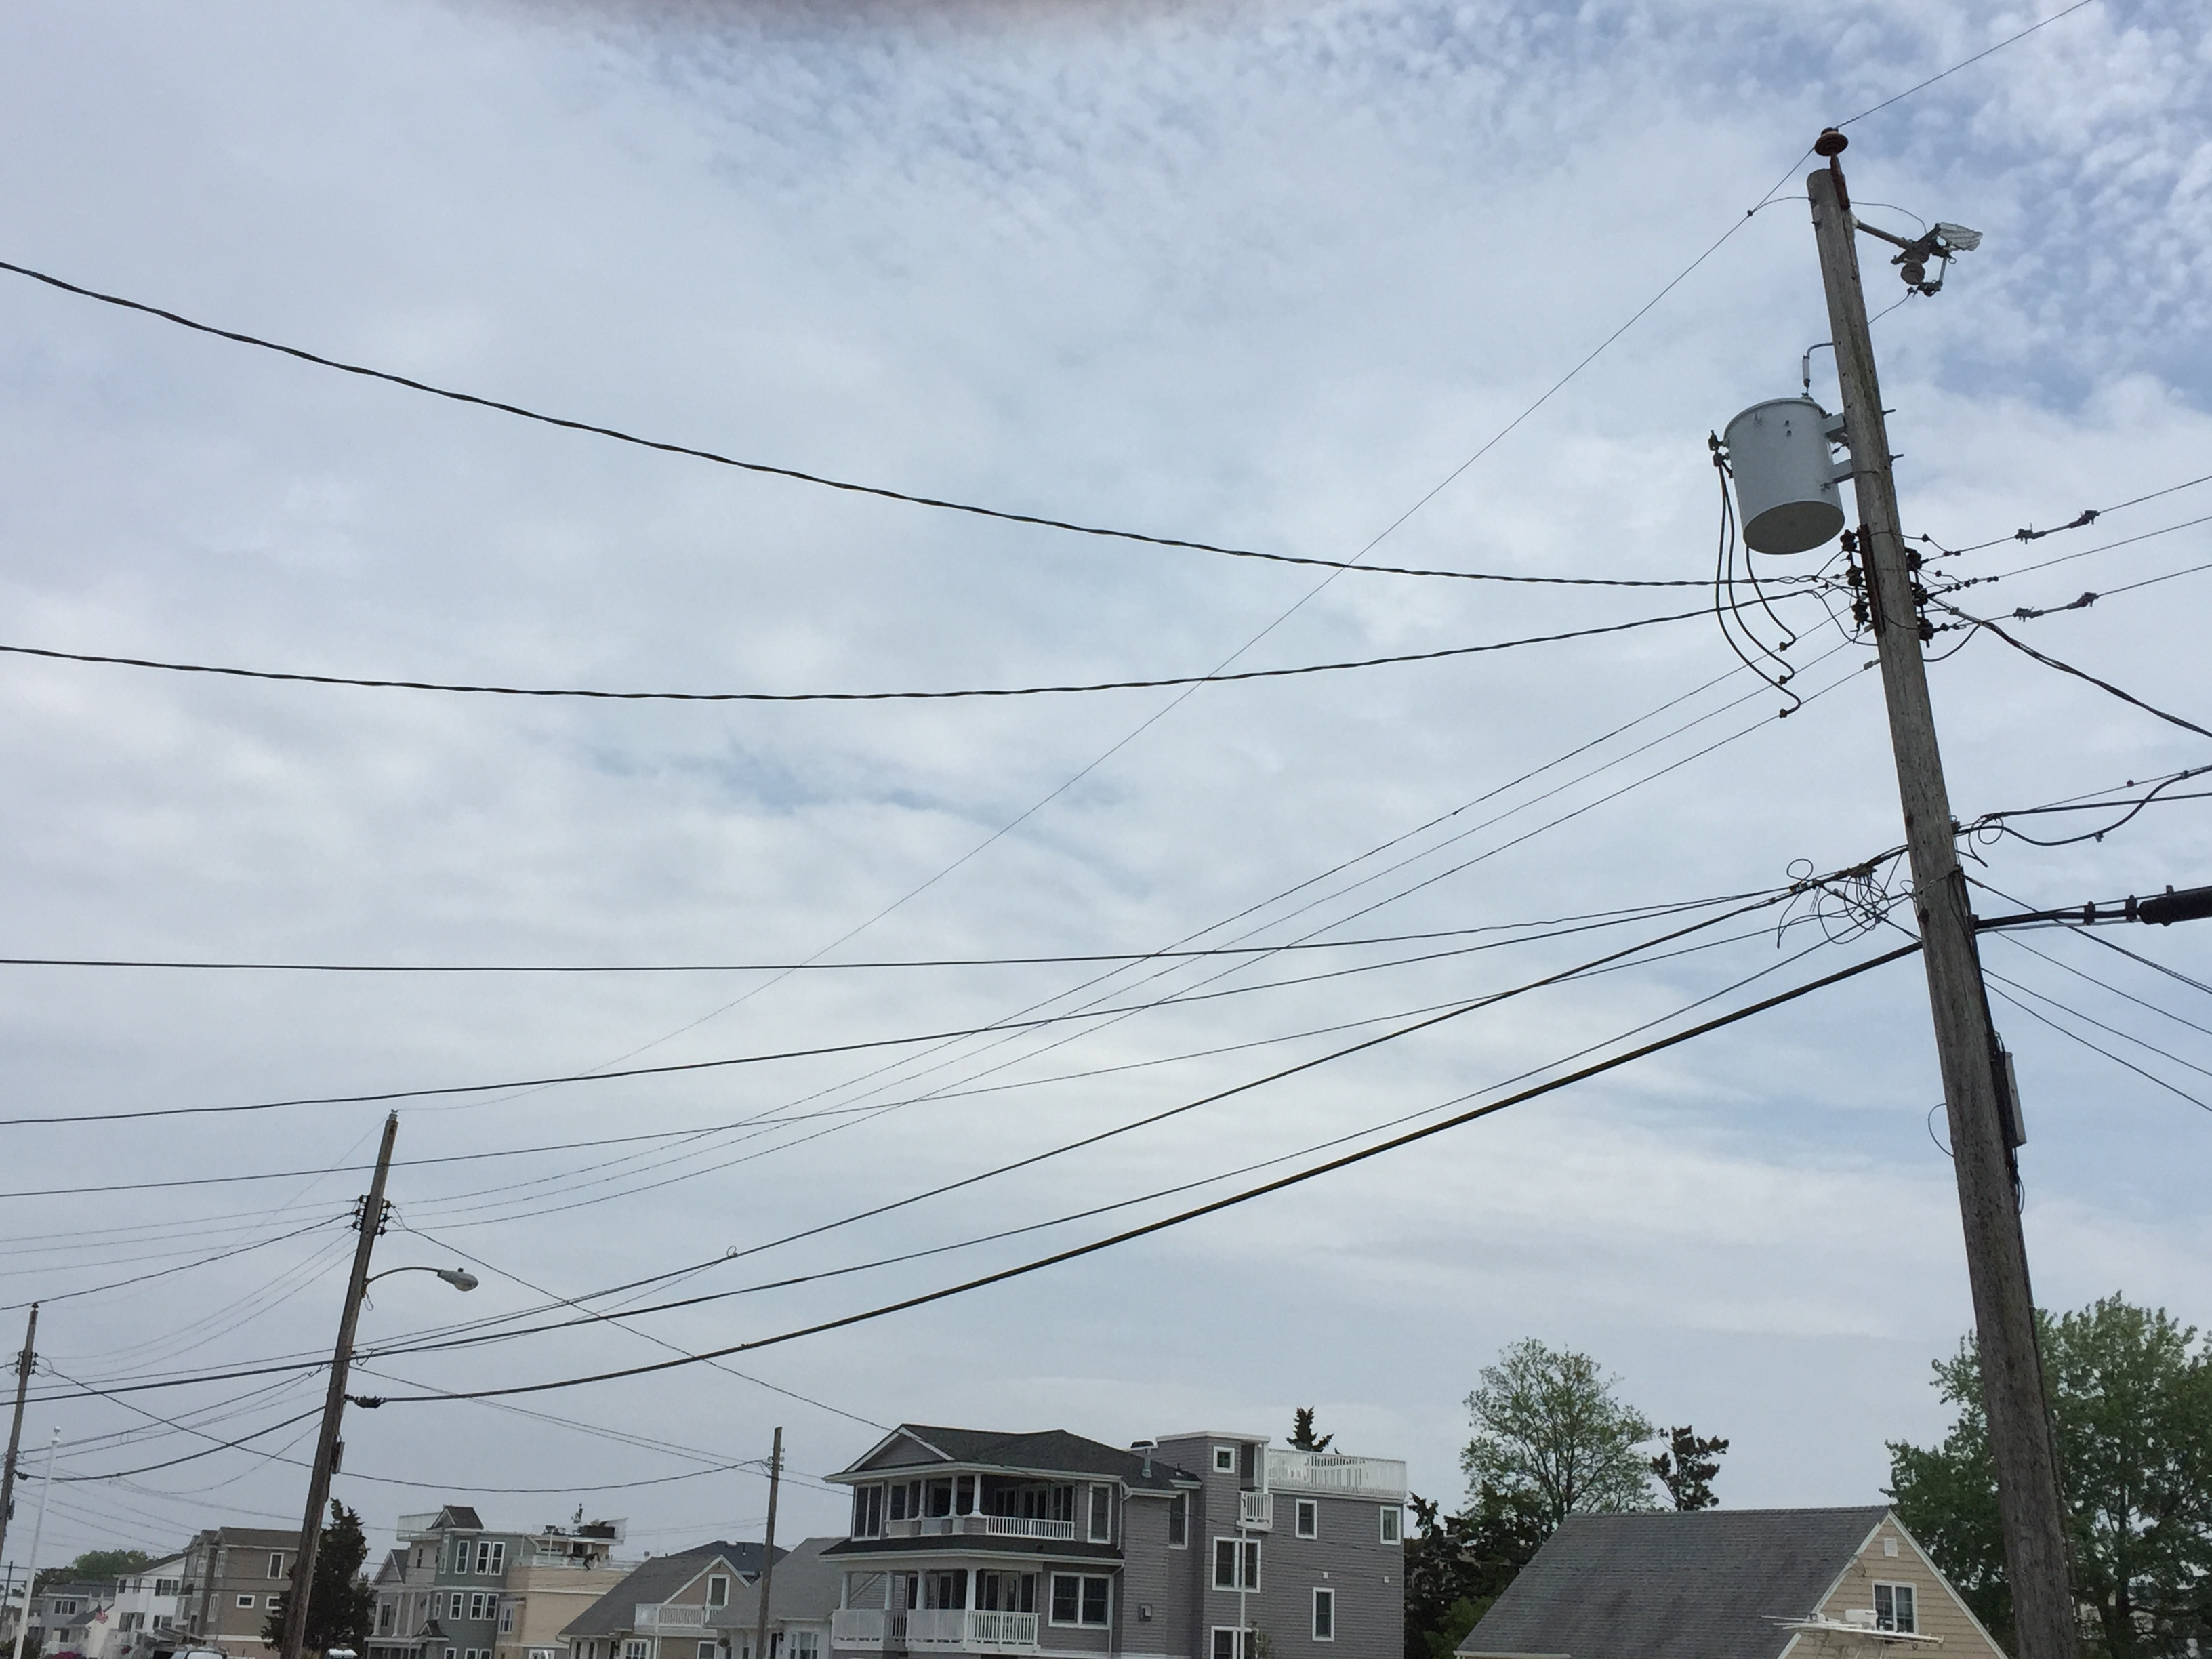 Power lines on a local street. (Photo: Daniel Nee)